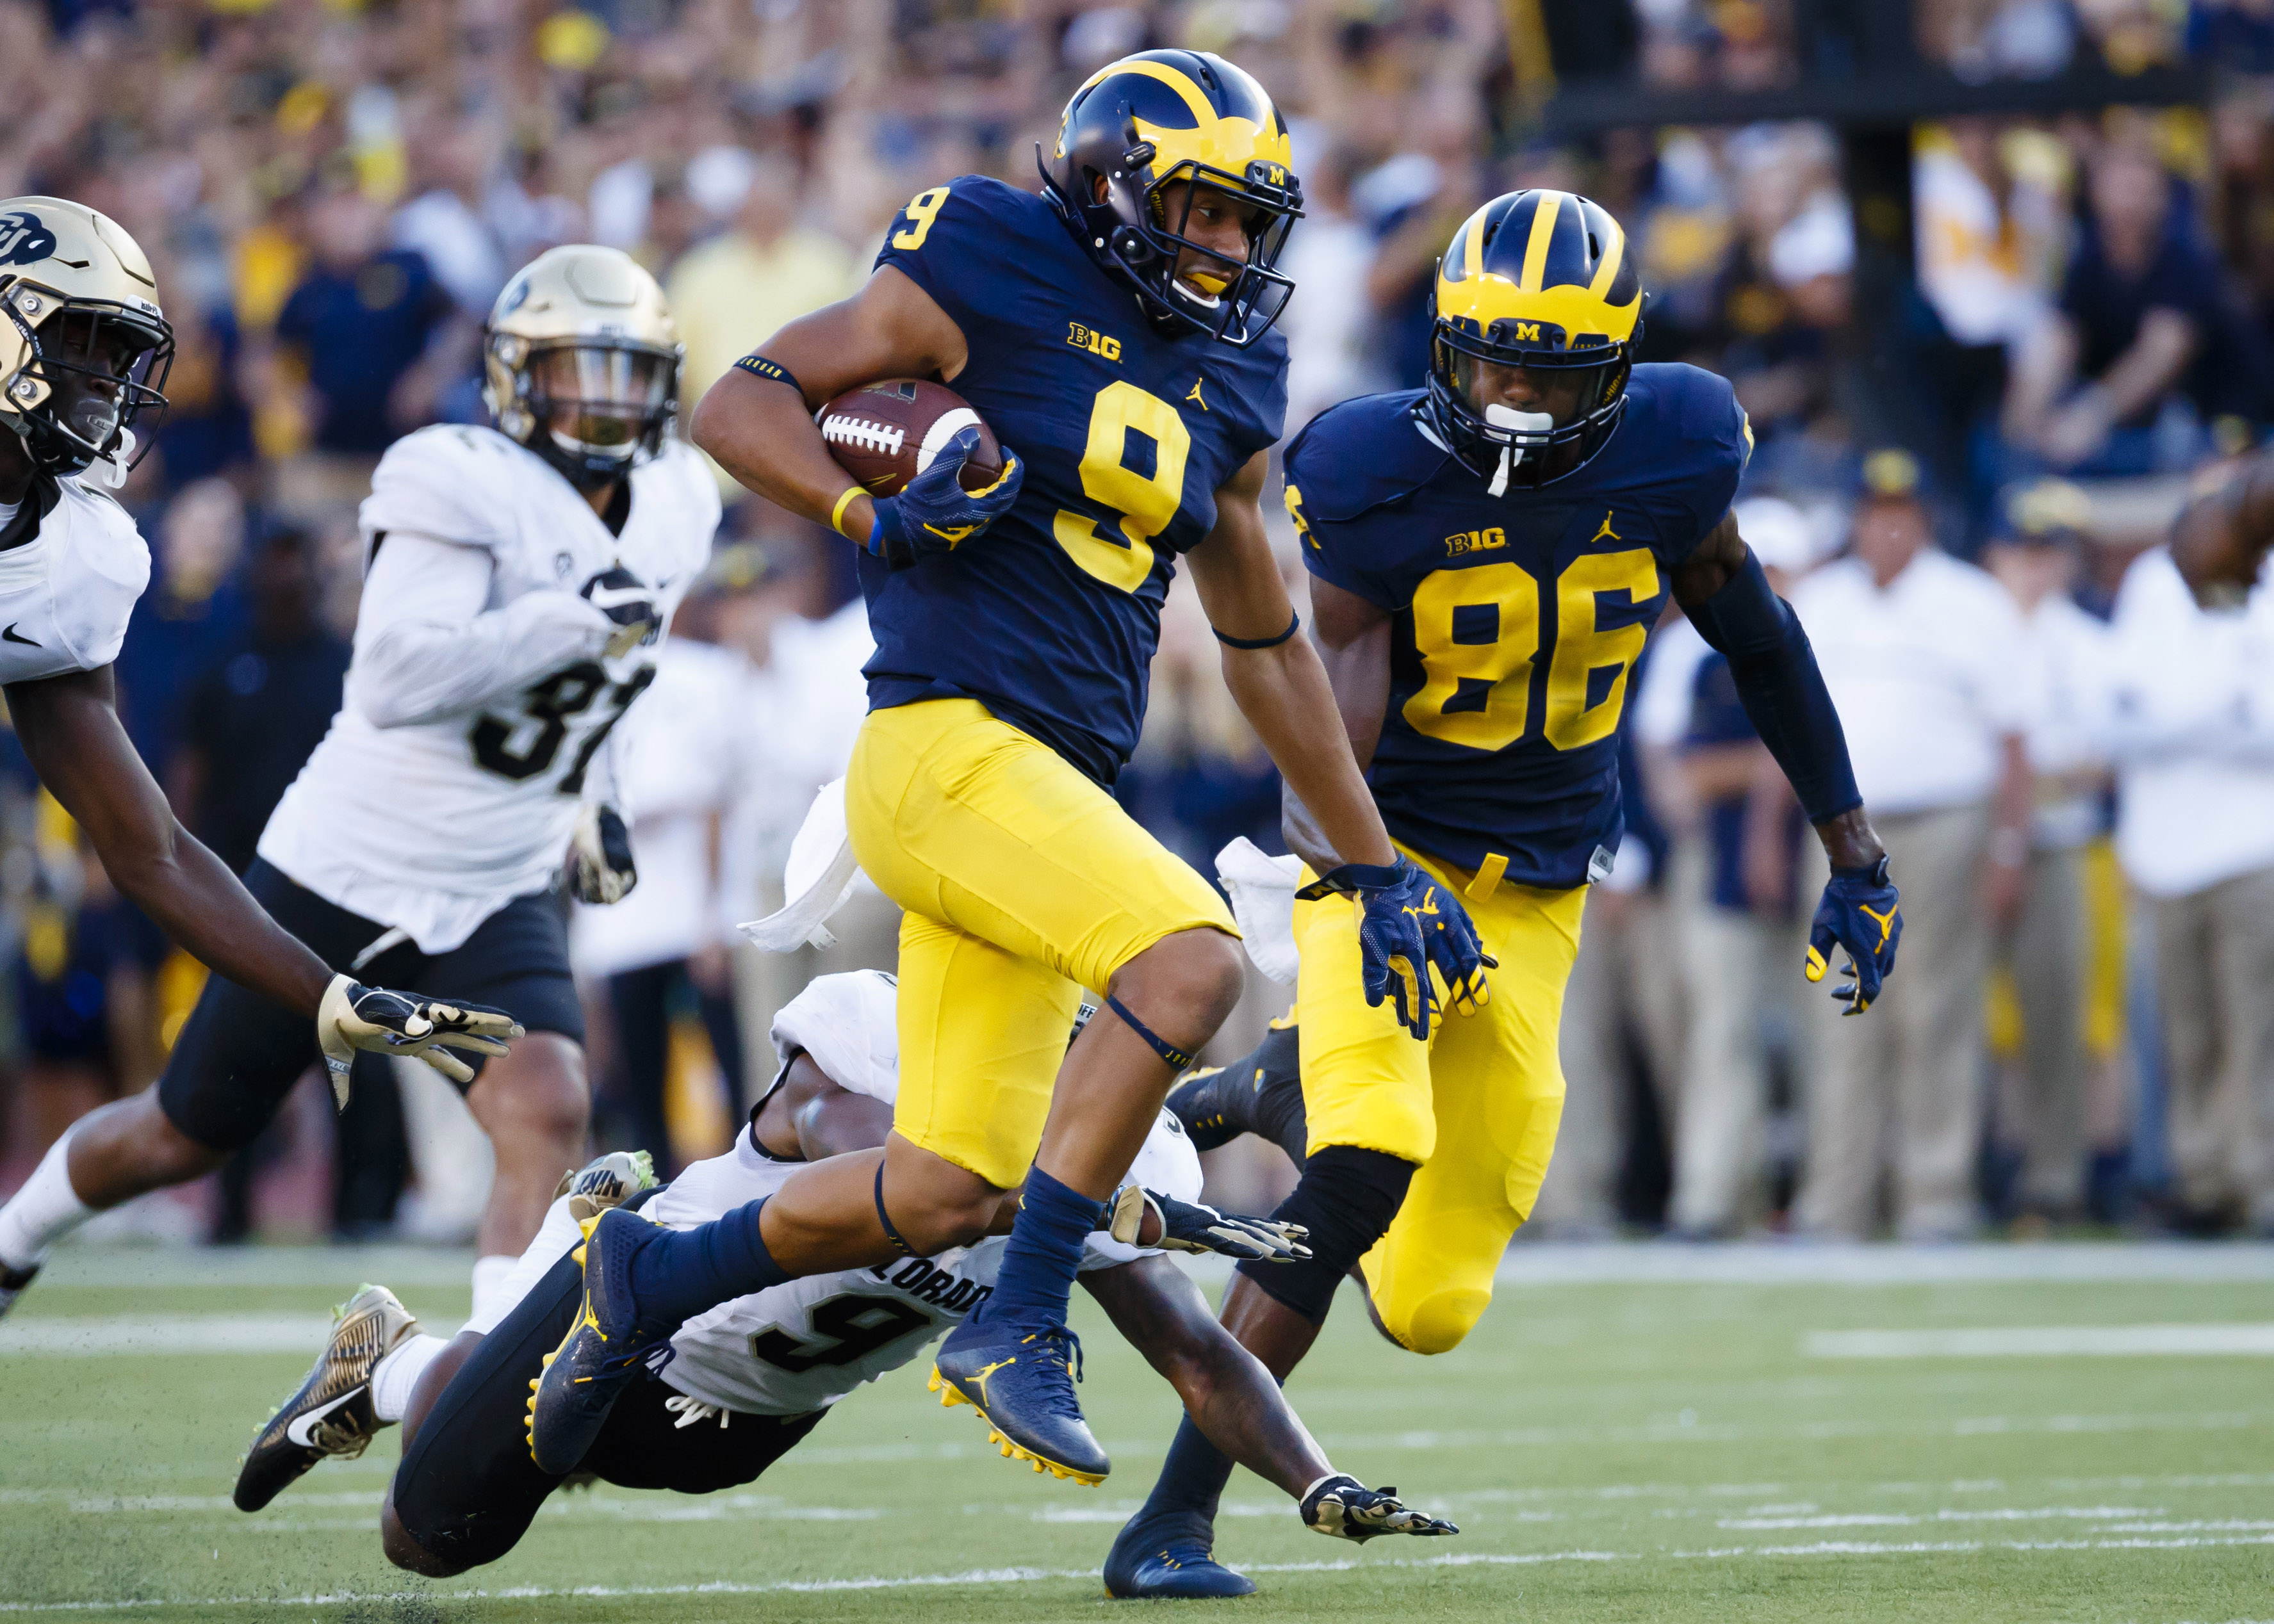 9546290-ncaa-football-colorado-at-michigan